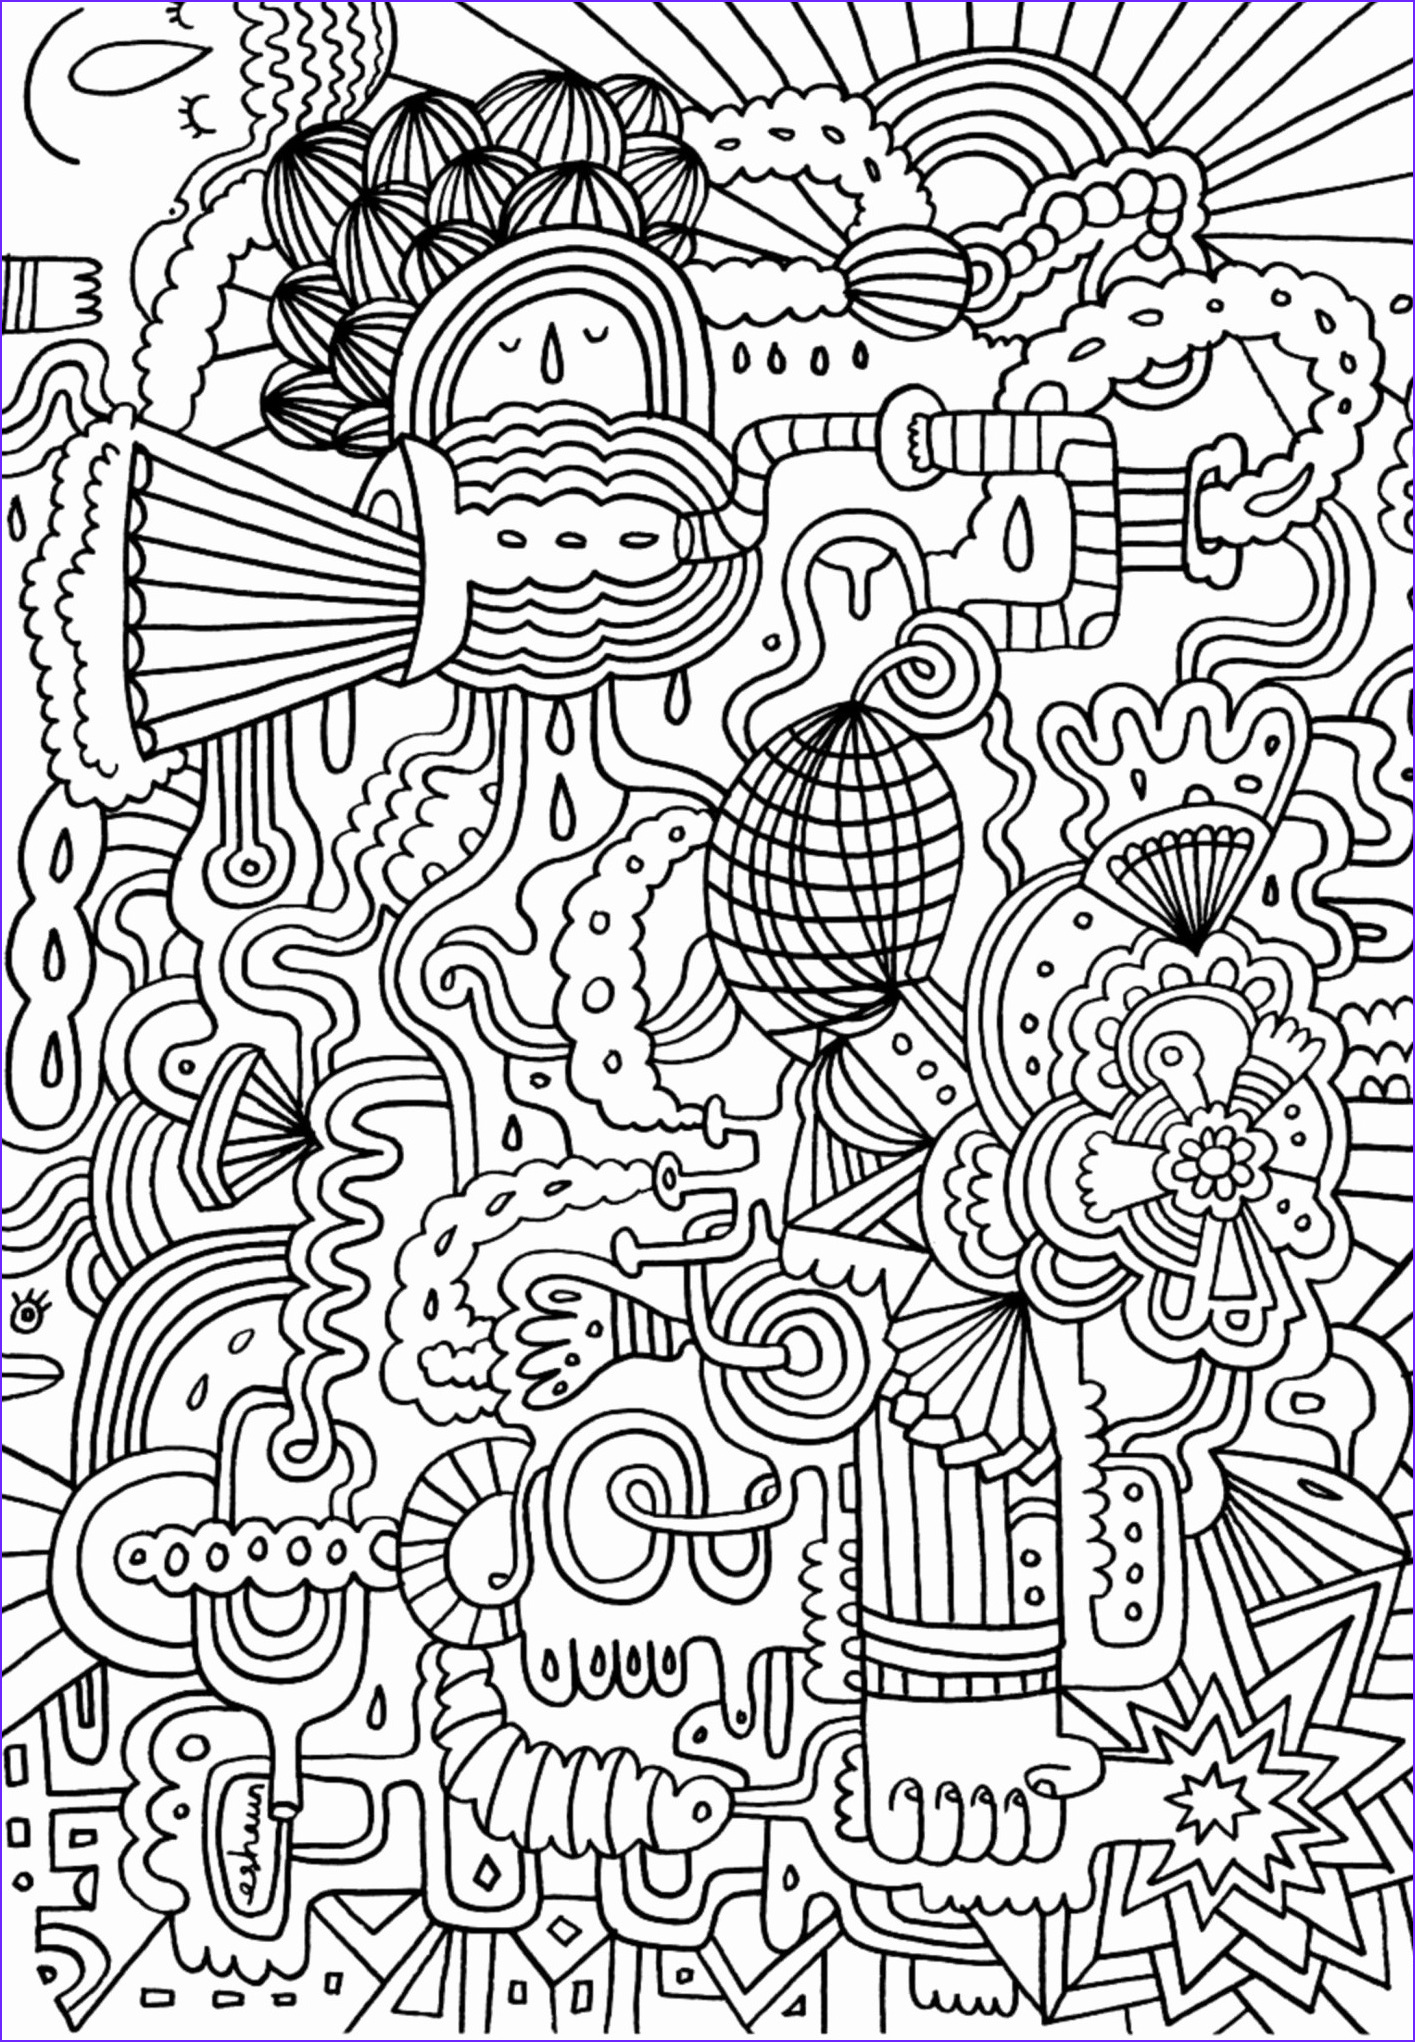 Coloring Books for Teens Awesome Gallery Plex Coloring Pages for Teens and Adults Best